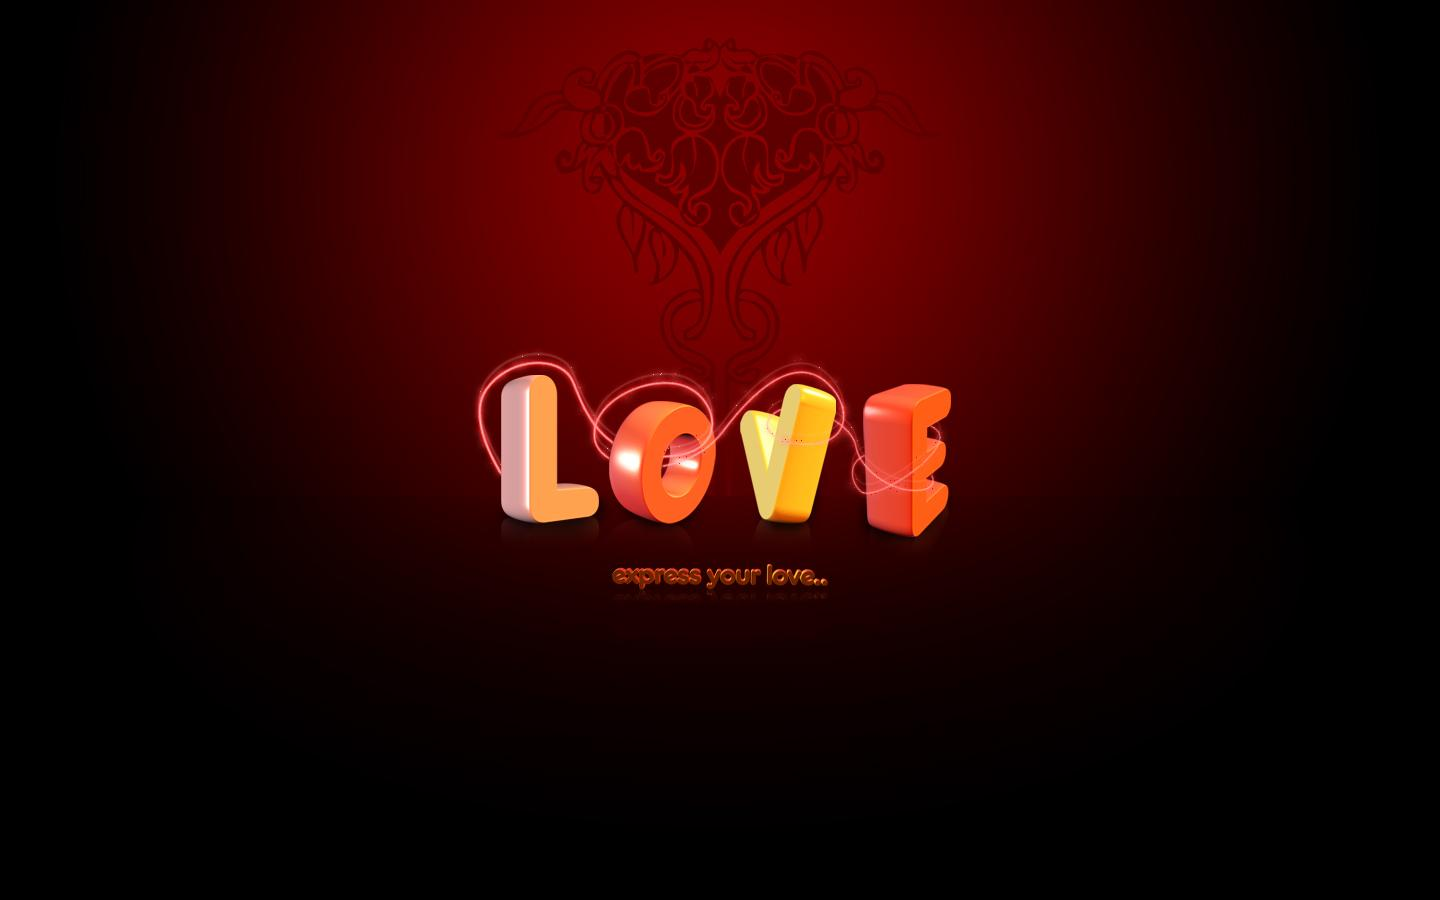 Love Expressing Wallpapers : Express Your Love Wallpapers - 1440x900 - 52467